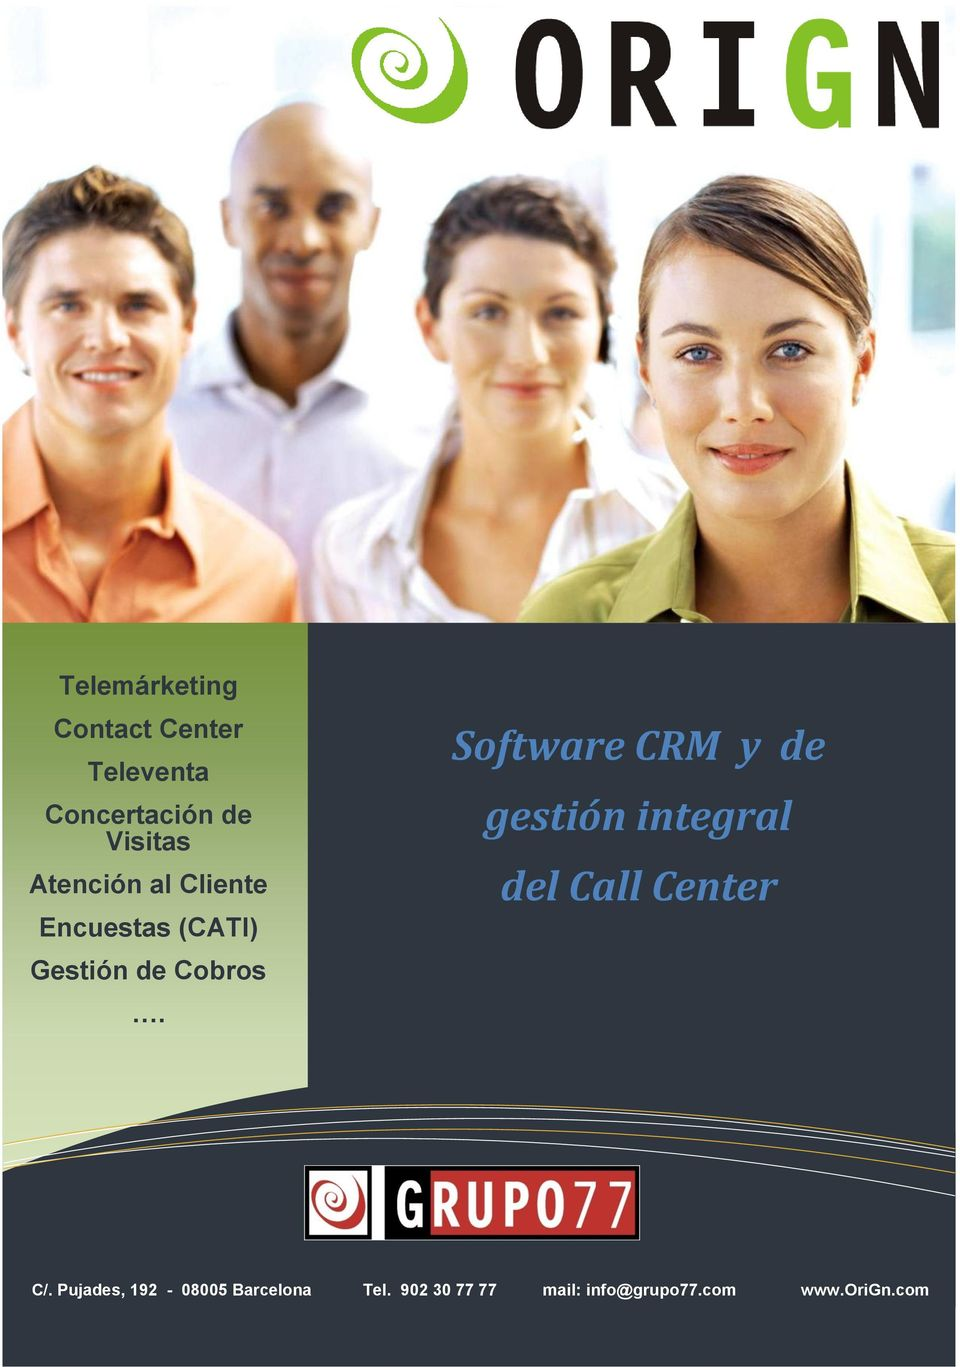 Software CRM y de gestión integral del Call Center C/.